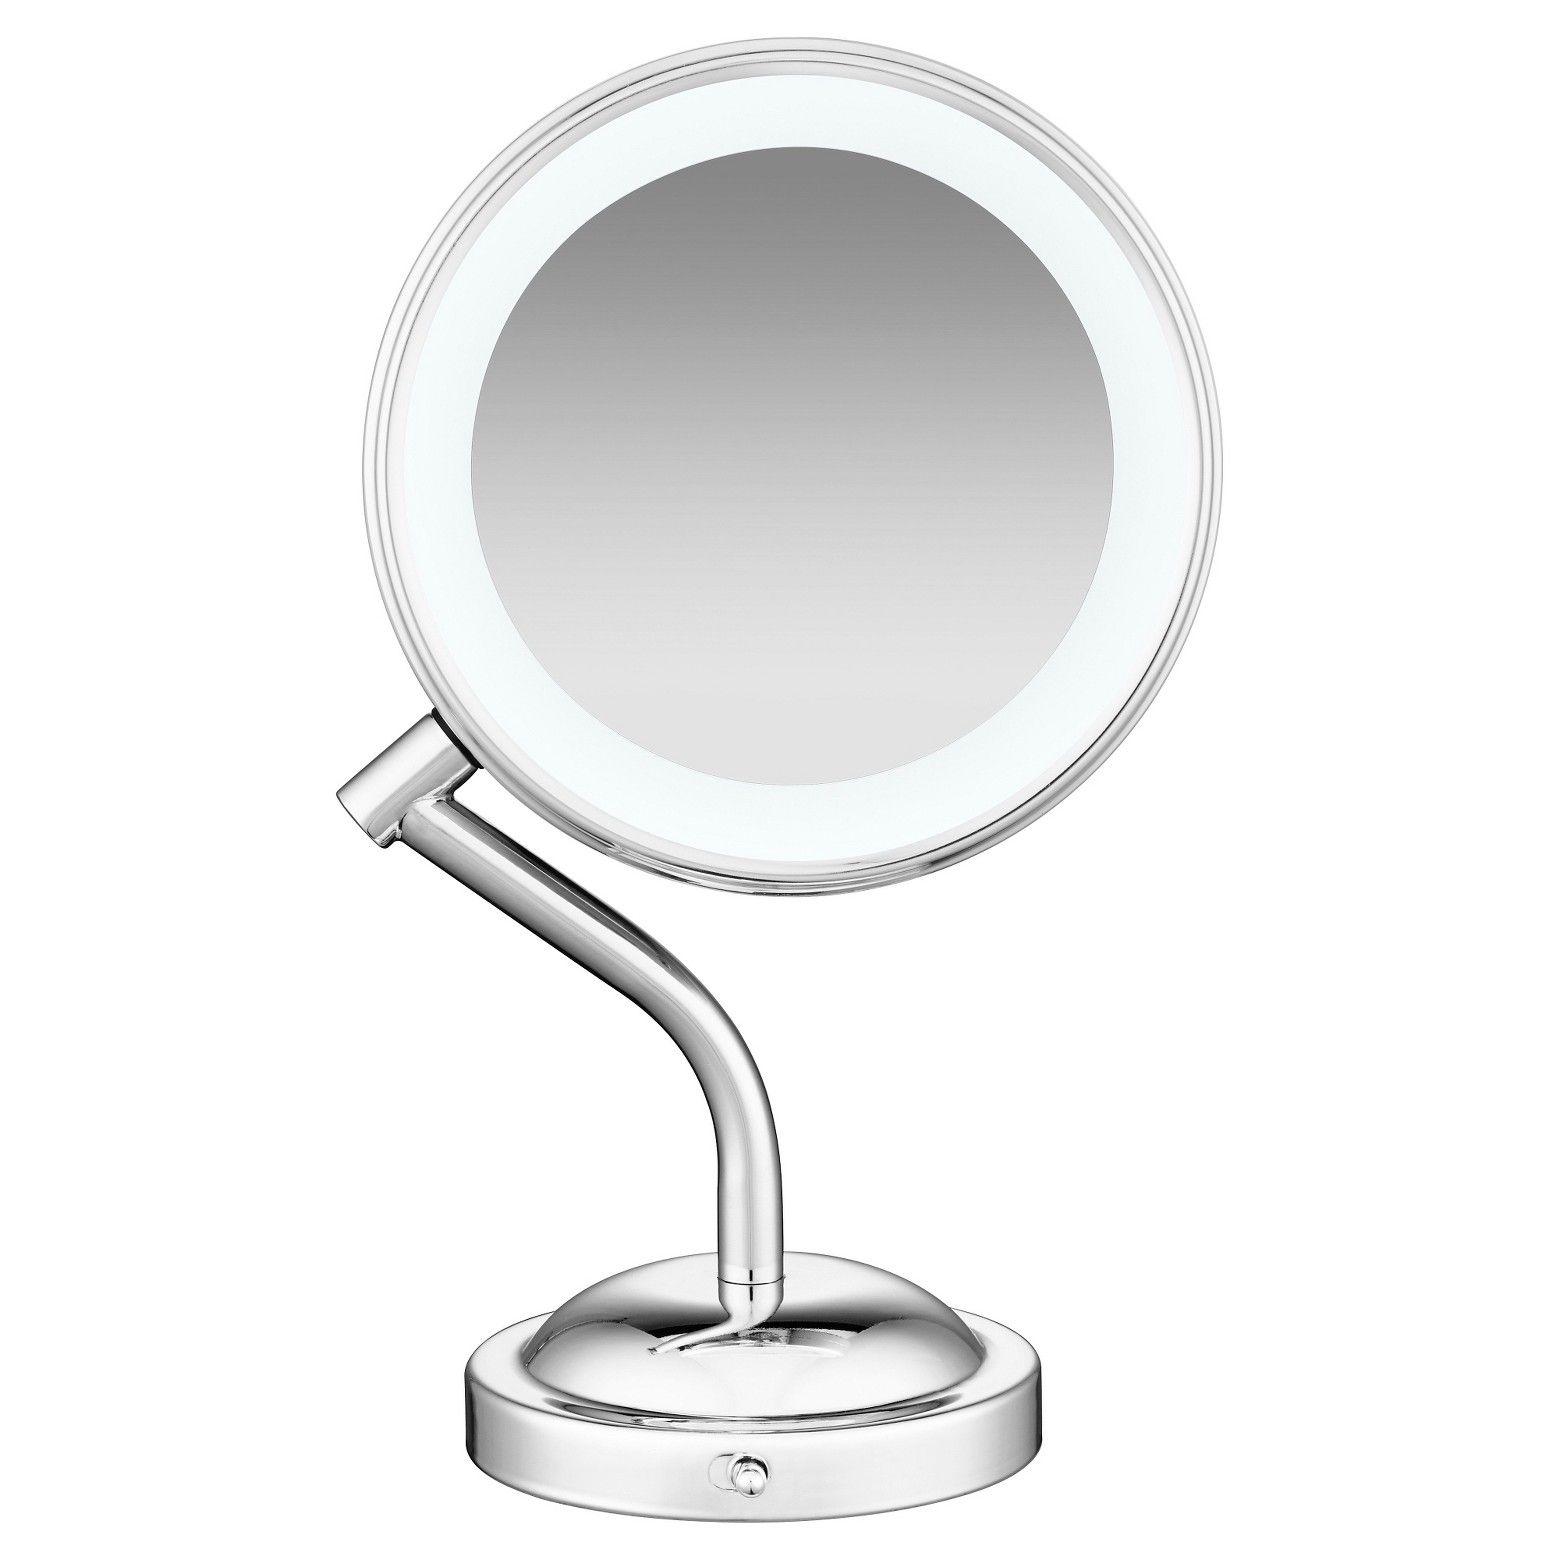 The Curved Stem Stand Up Led Lighted Mirror By Conair Has 2 Sided Magnification 1x X2f 5x It Lights Up So You Can Have Led Mirror Mirror With Lights Mirror